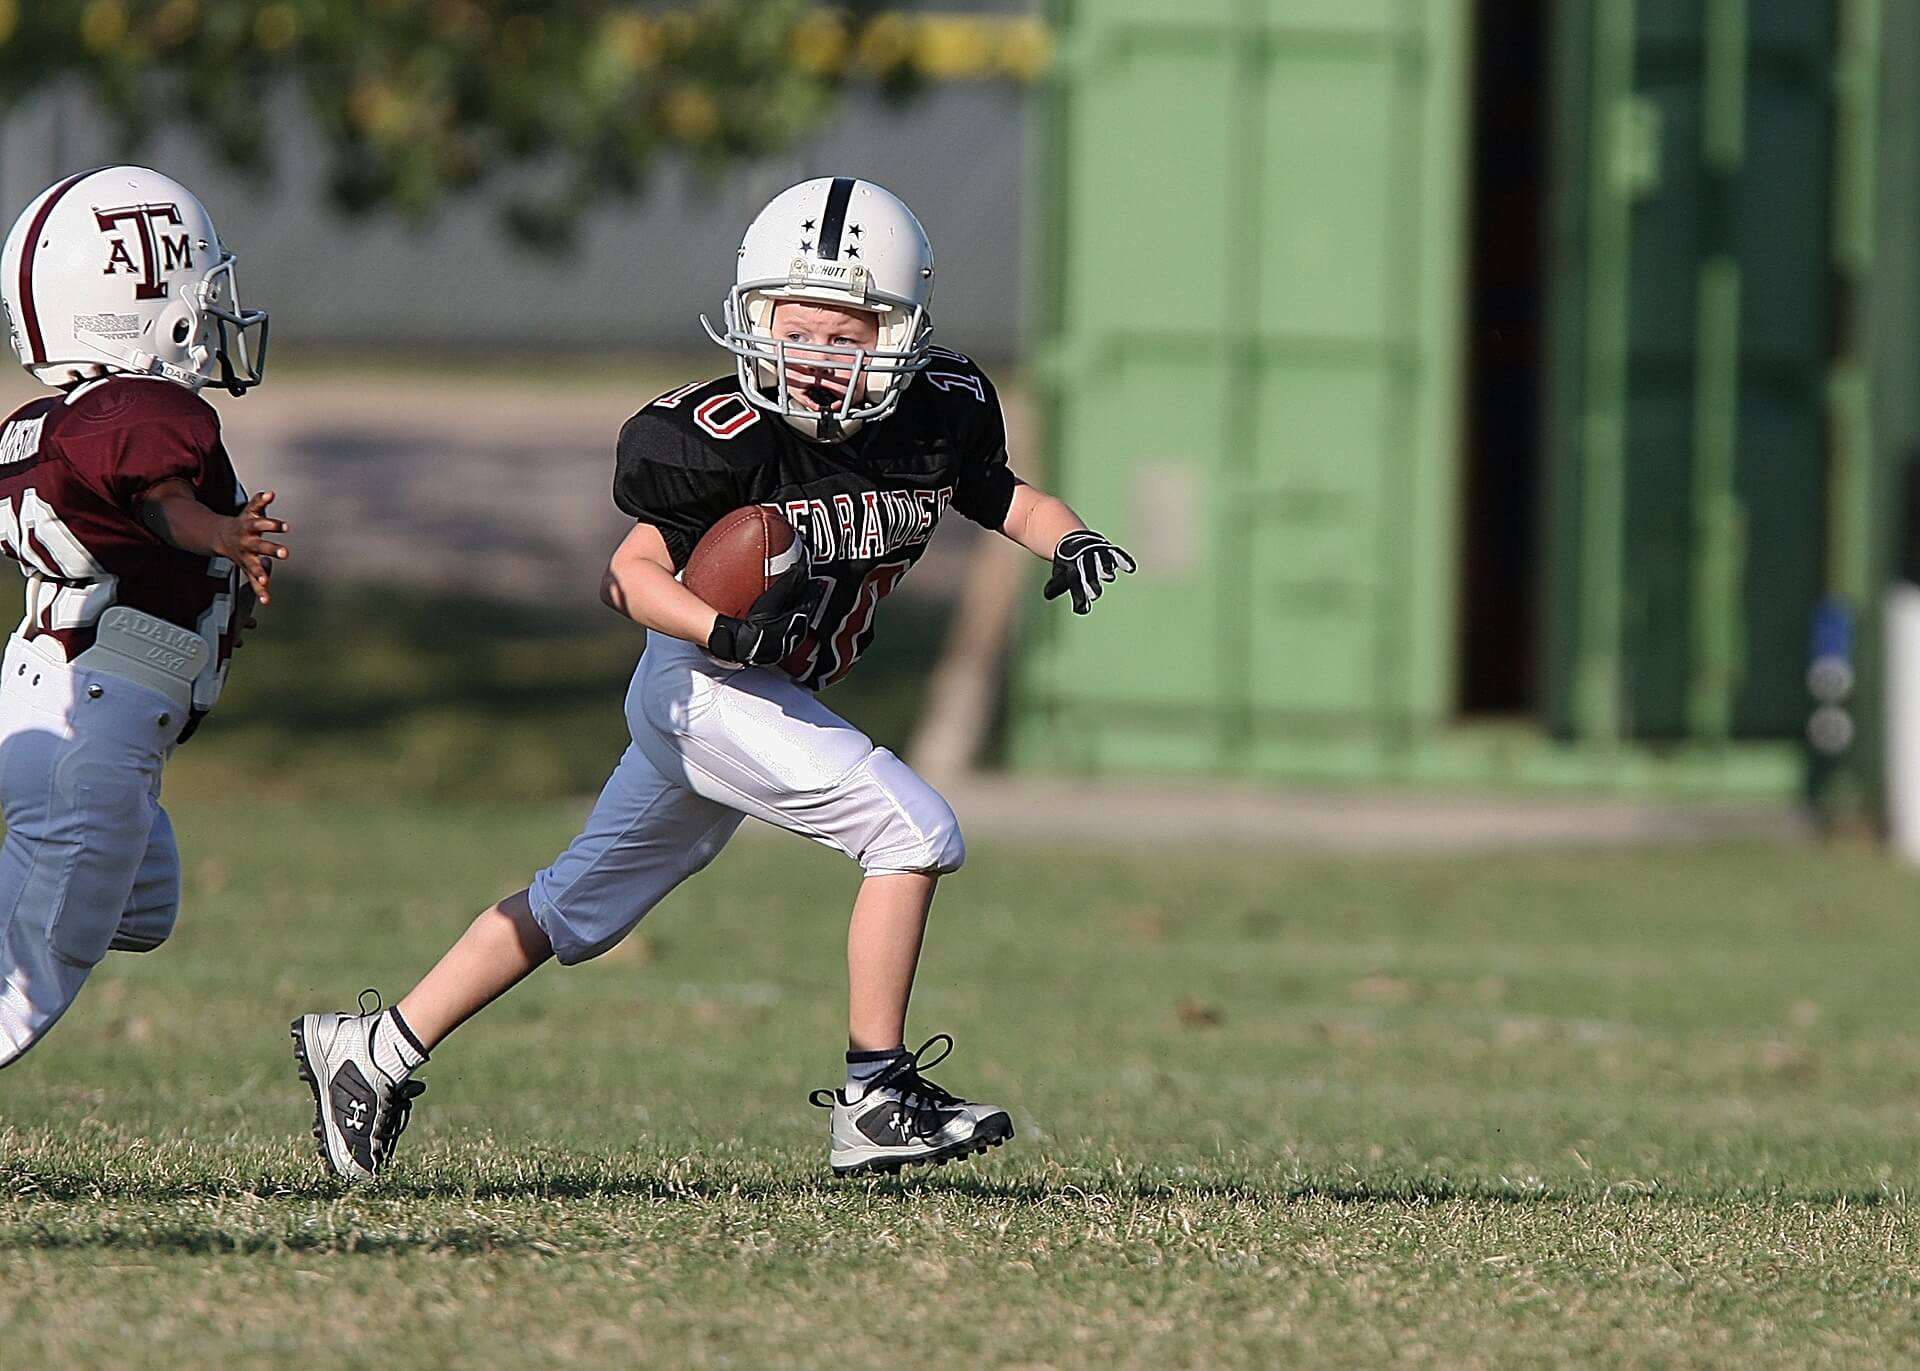 Fuelling Up- Nutritious Snacks for Young Athletes